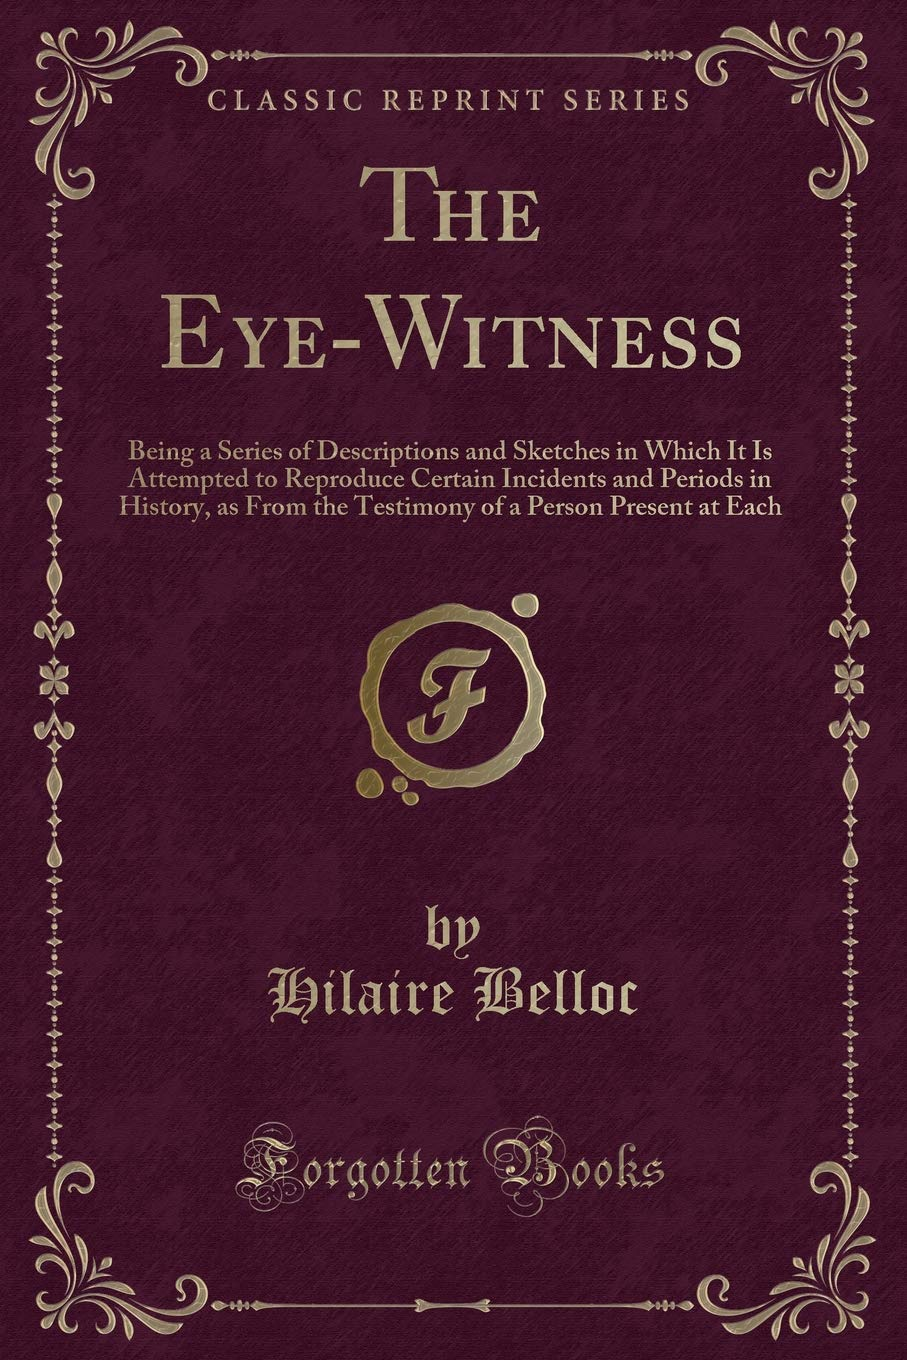 The Eye-Witness: Being a Series of Descriptions and Sketches in Which It Is Attempted to Reproduce Certain Incidents and Periods in History, as From of a Person Present at Each (Classic Reprint) pdf epub